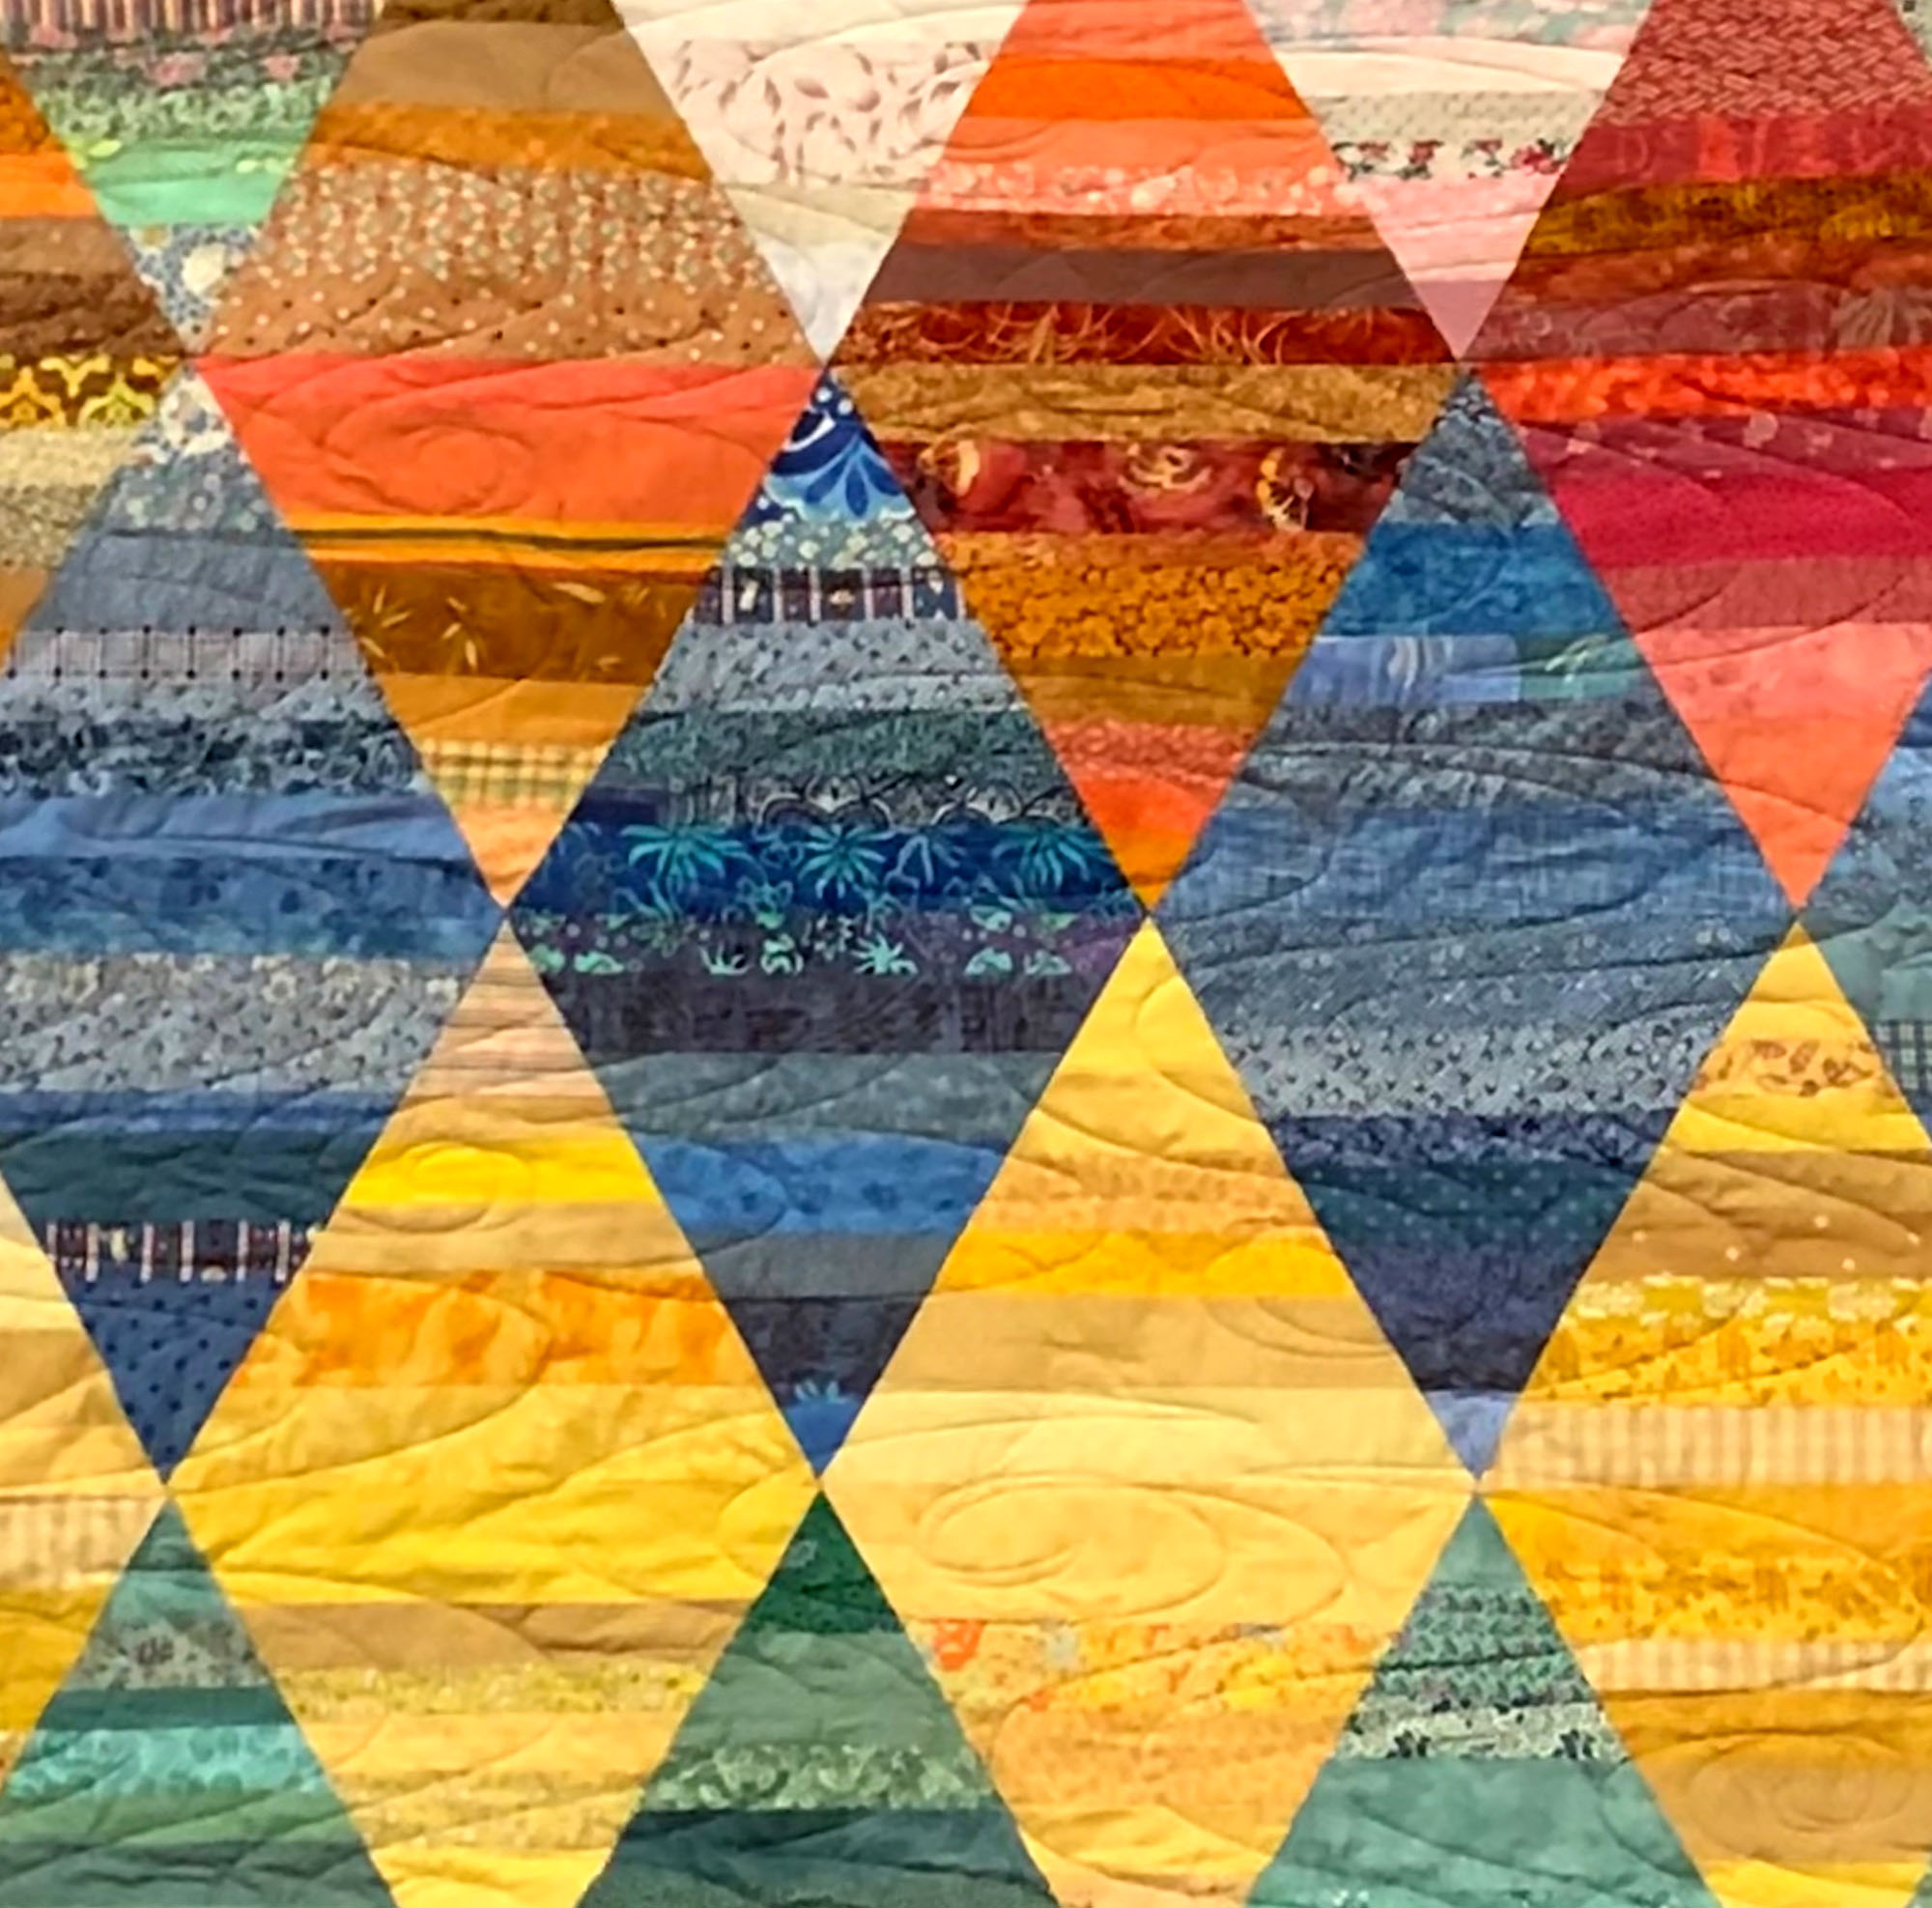 Triangle quilt  detail by Kate Haller